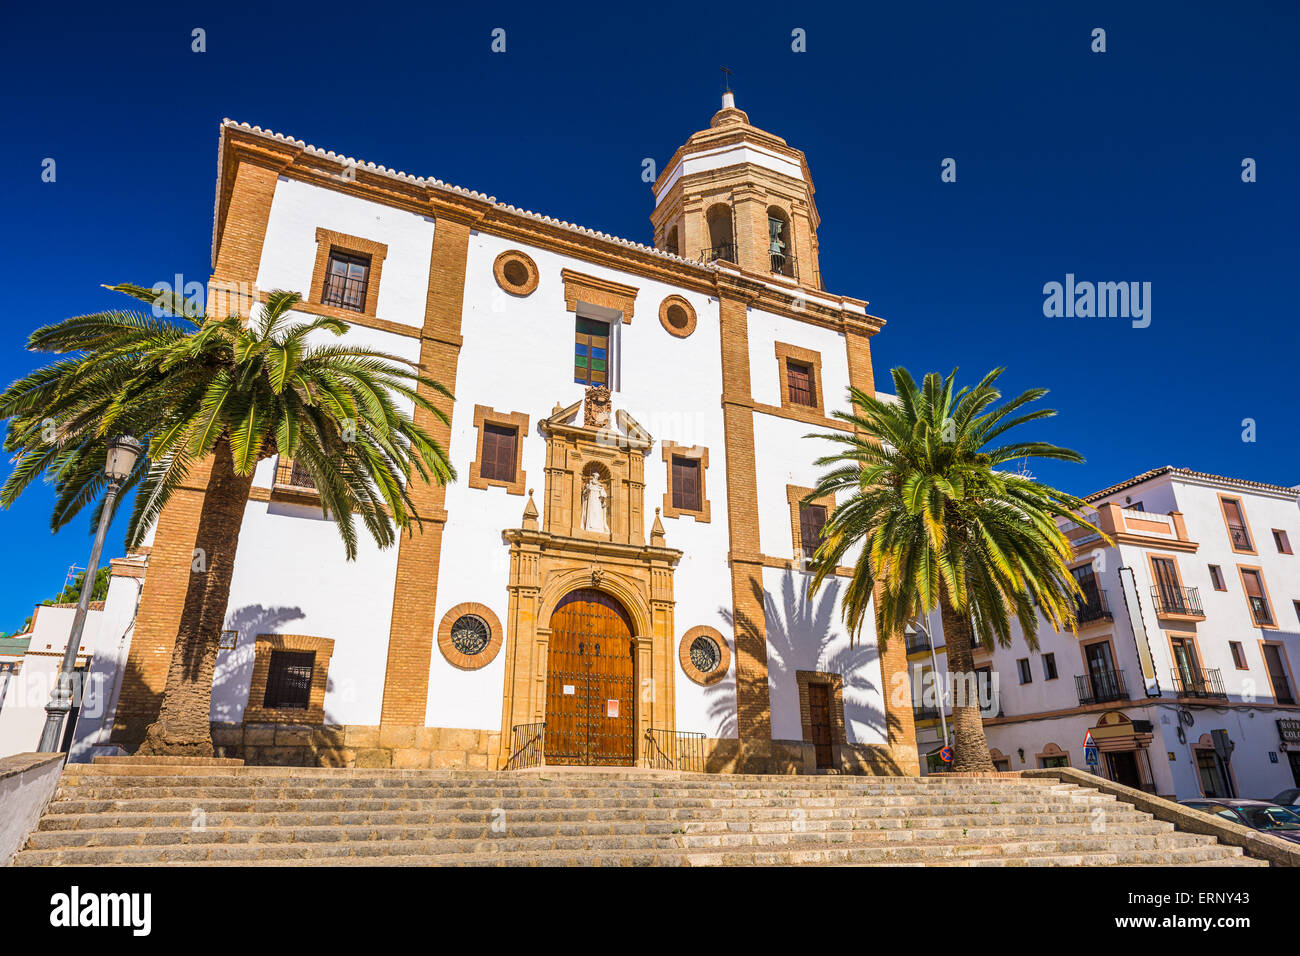 Ronda, Spain at The Merced Carmelite Convent. - Stock Image